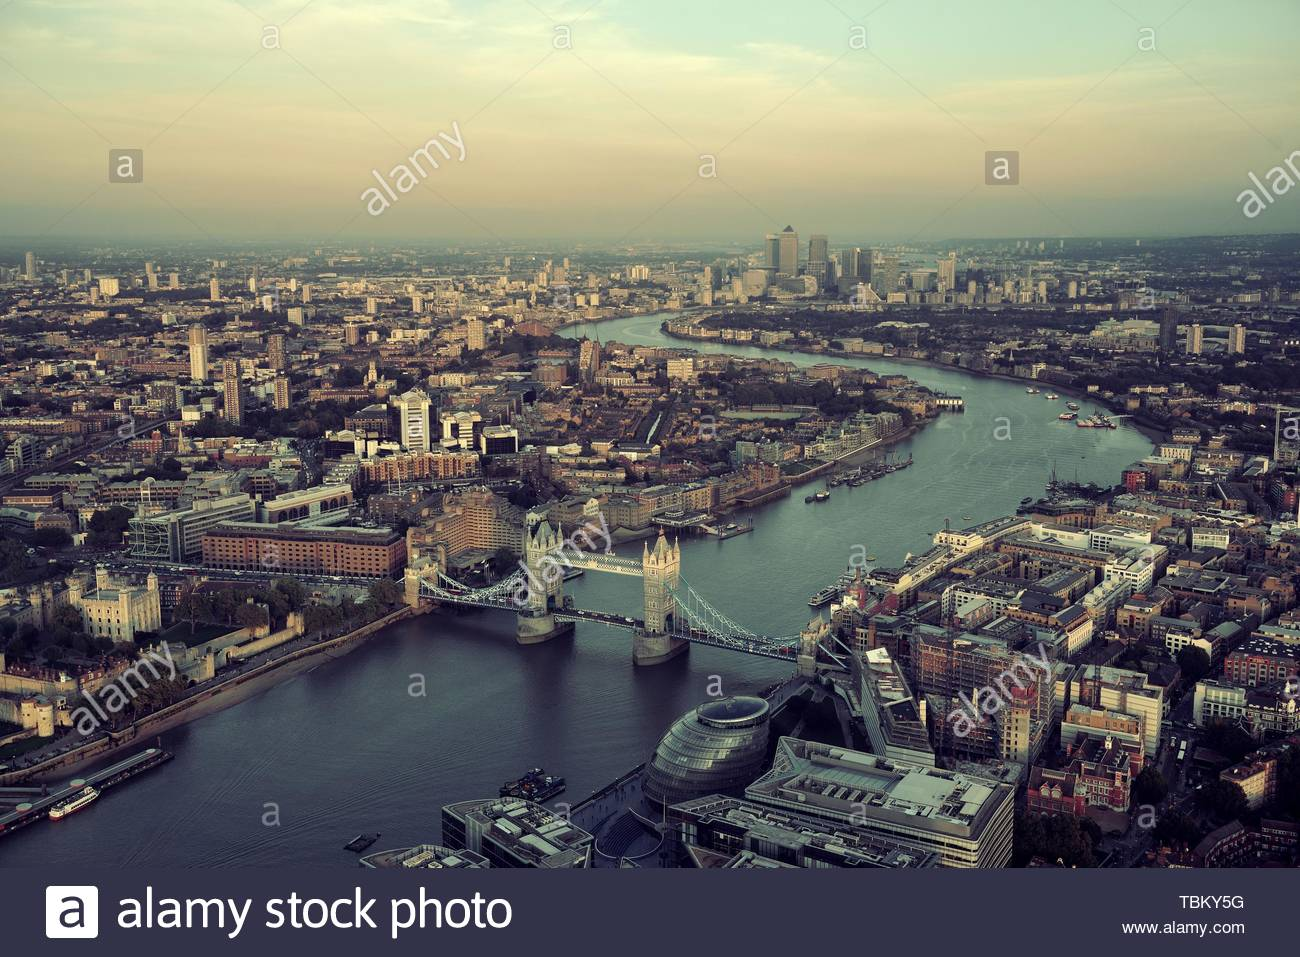 London rooftop view panorama at sunset with urban architectures and Thames River. - Stock Image